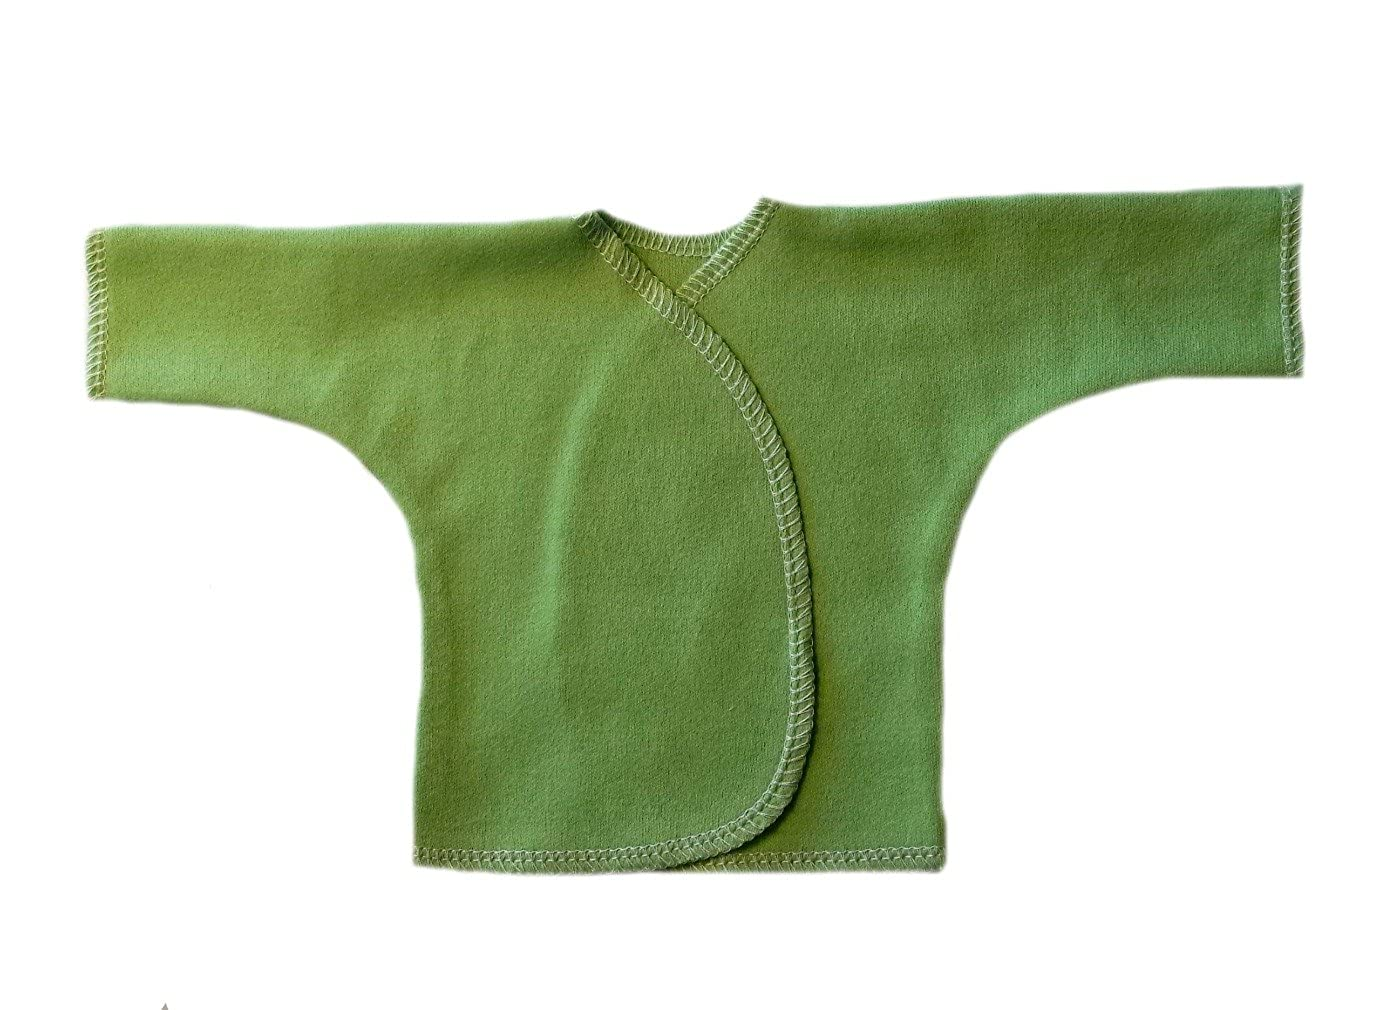 Jacquis Unisex Baby Cotton Knit Long Sleeve Shirts Lime Green 0-3 Months Lots of Colors